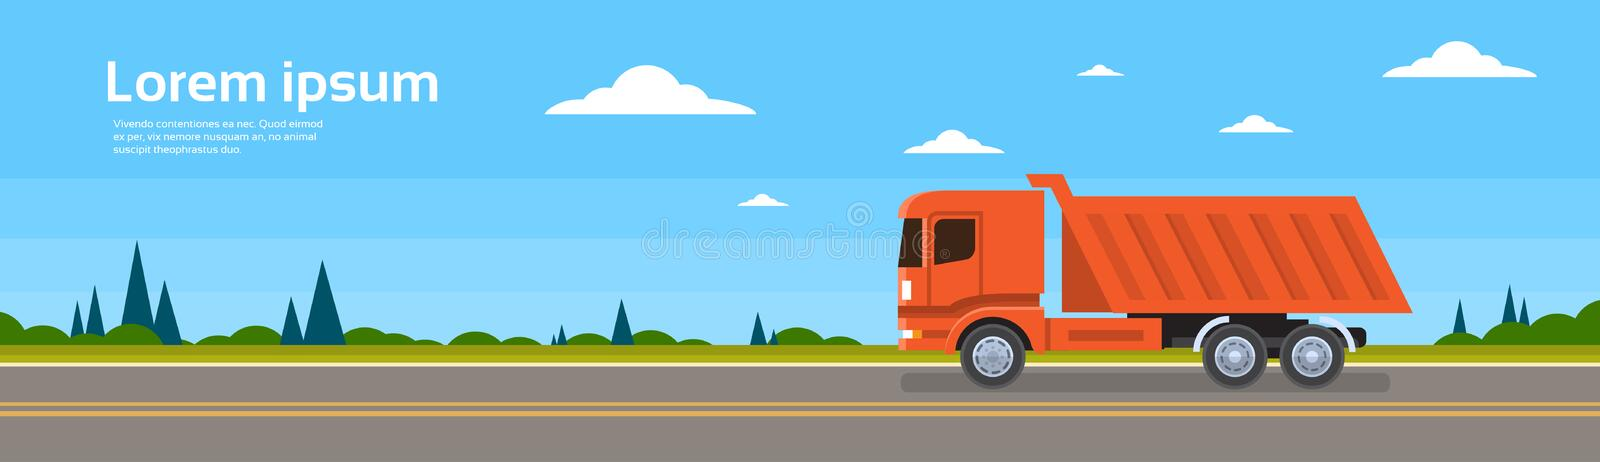 Lorry Tipper Truck Dump Car On Road Cargo Shipping Delivery stock illustration